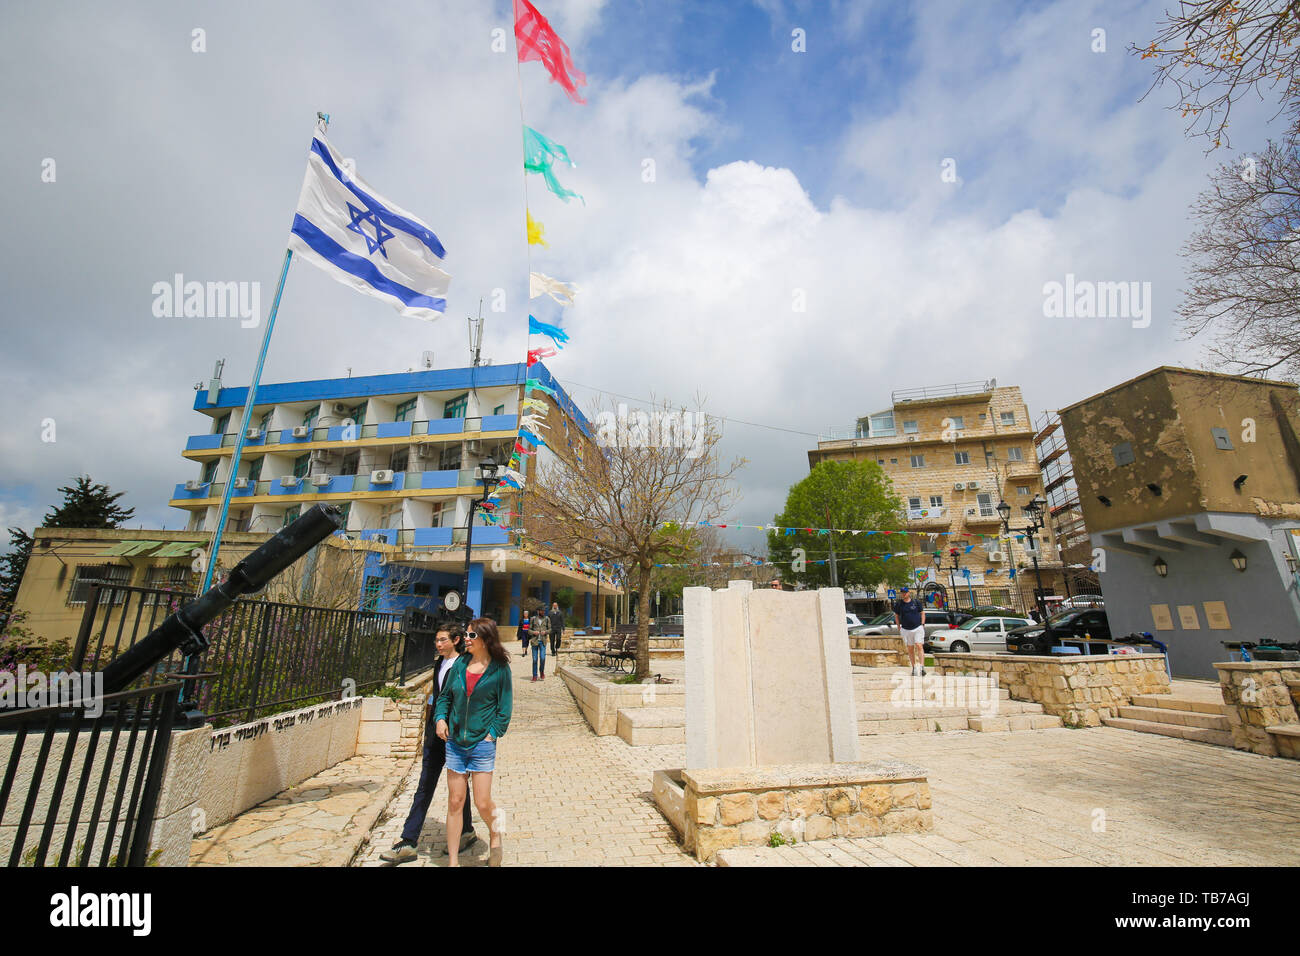 Safed, Israel - April 16, 2019: View of Safed, a city in the Northern District of Israel. Located at an elevation of 900 metres, Safed is the highest  Stock Photo